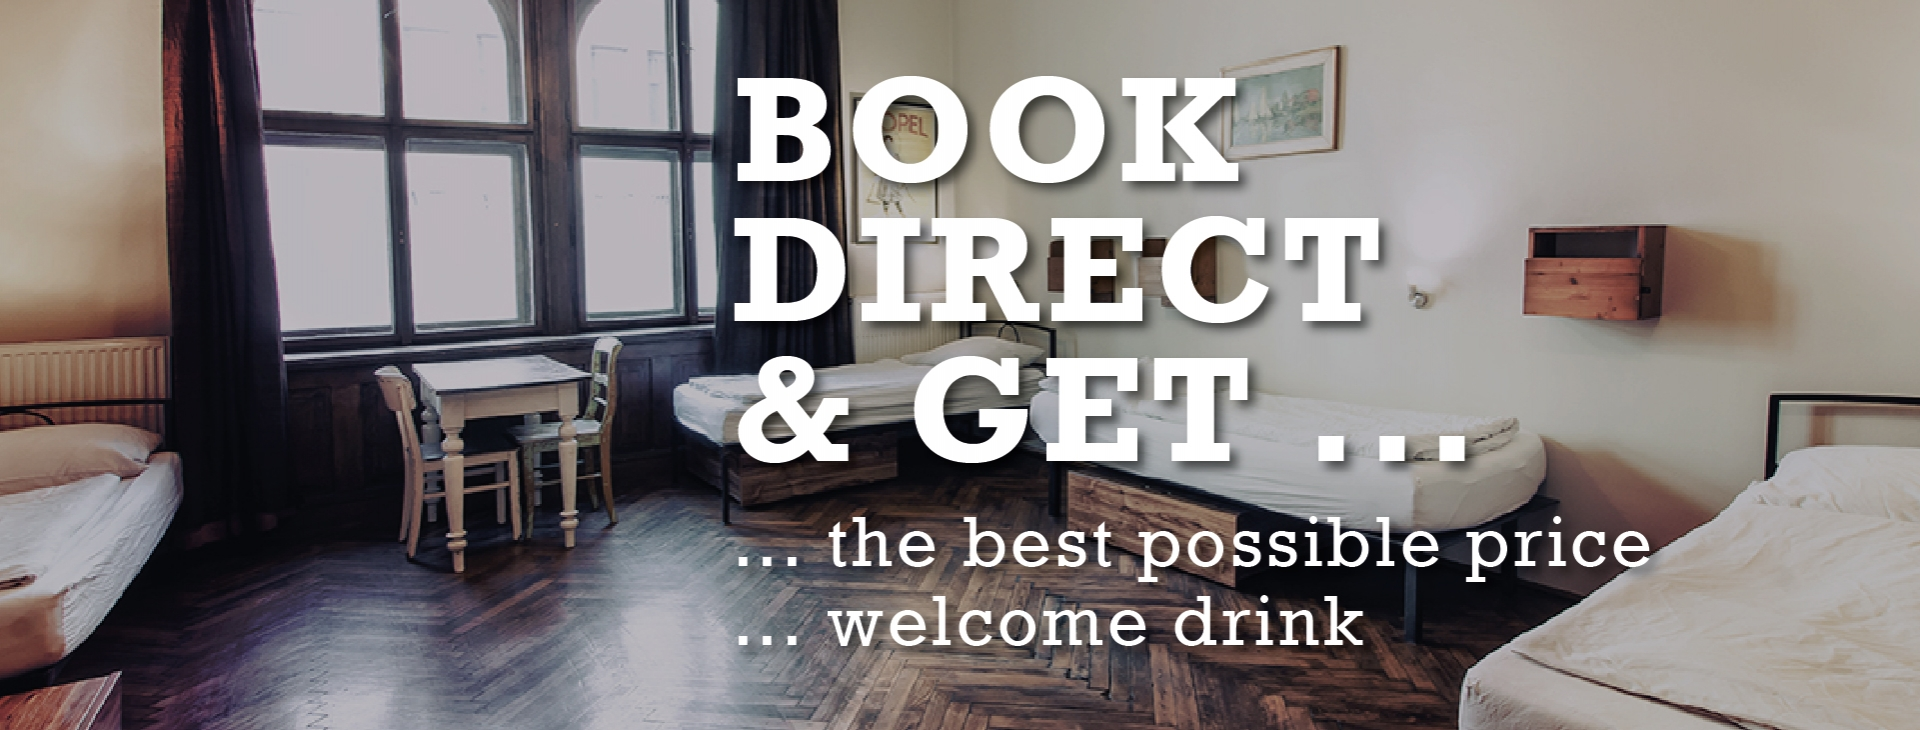 Direct Bookings_SH-CI-ST_1920x730-03